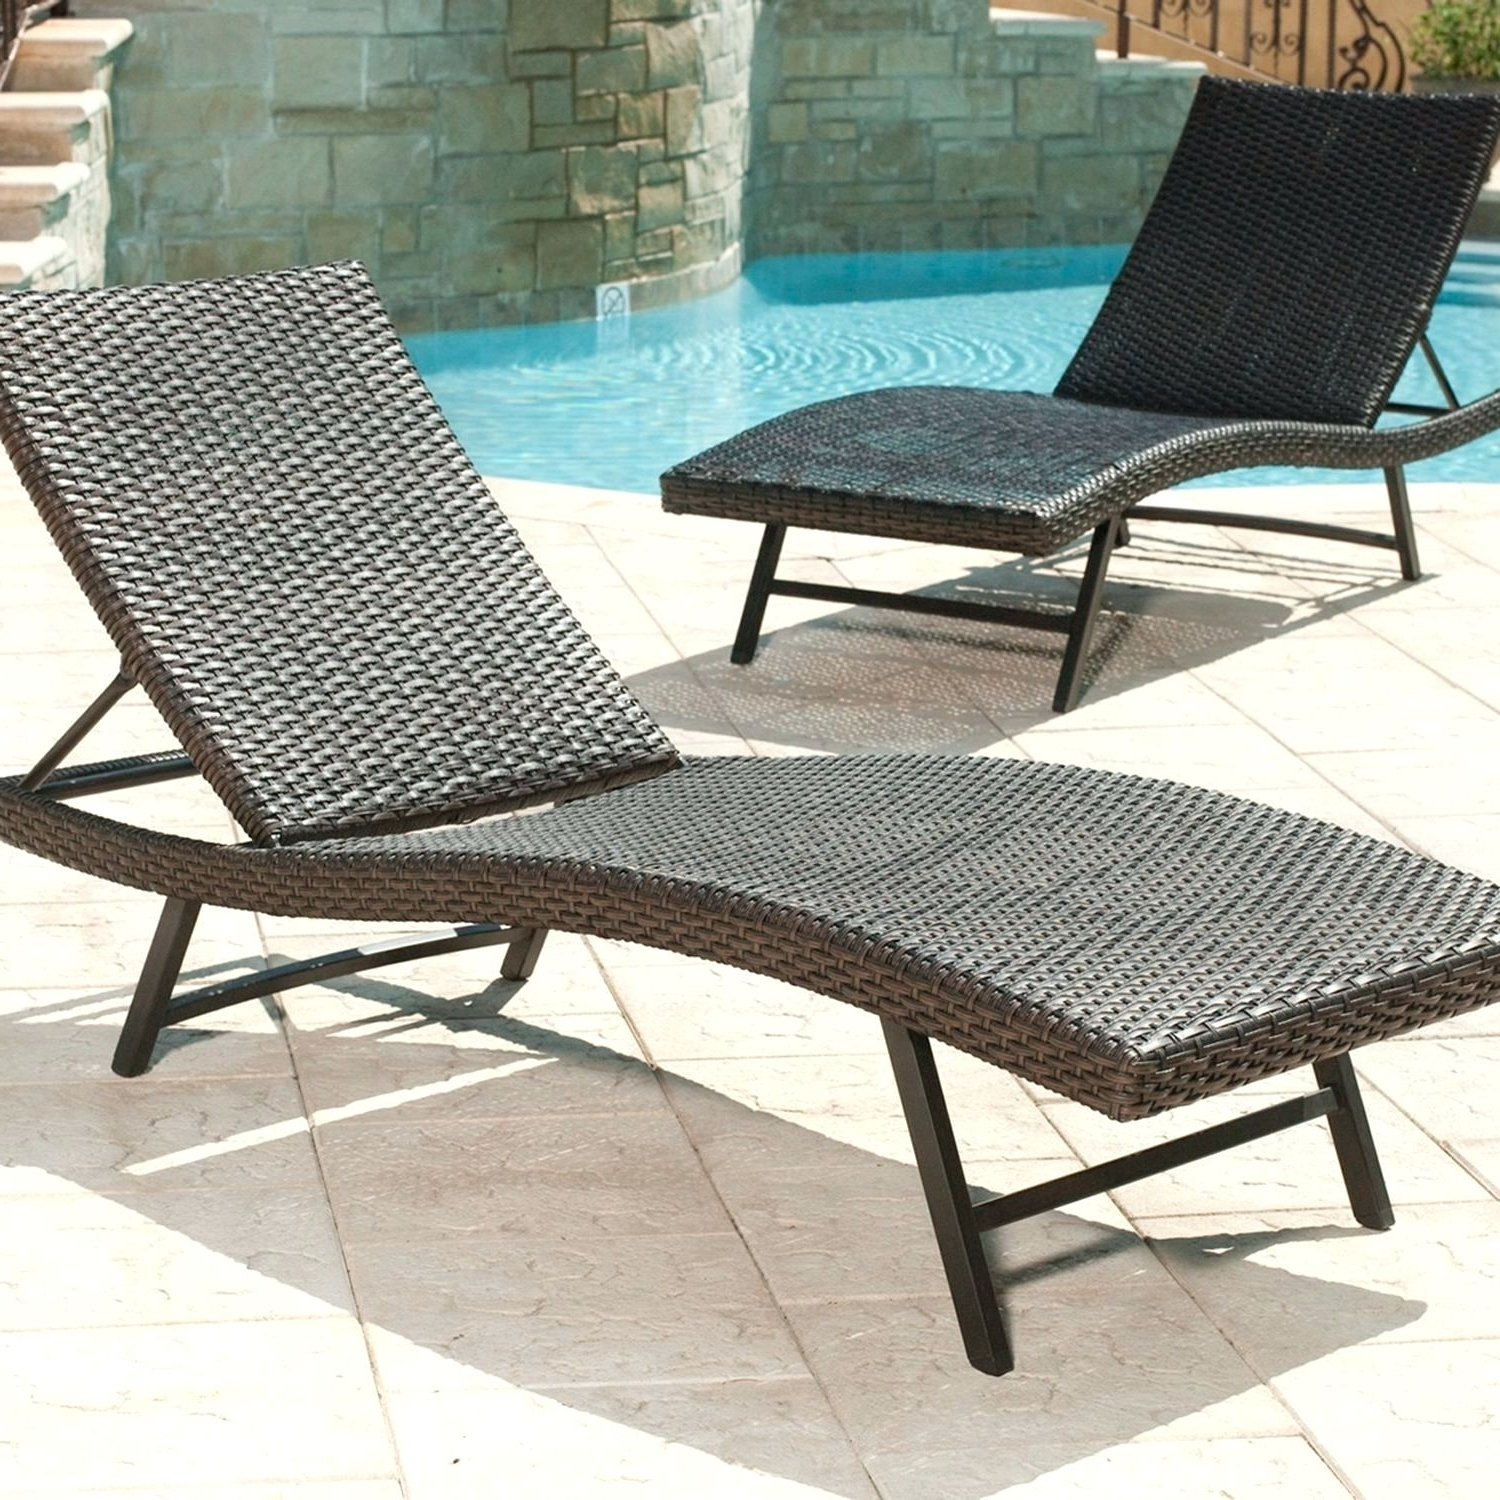 Most Current Chaise Lounge Chairs At Sears With Regard To Sears Lounge Chair Covers • Lounge Chairs Ideas (View 10 of 15)